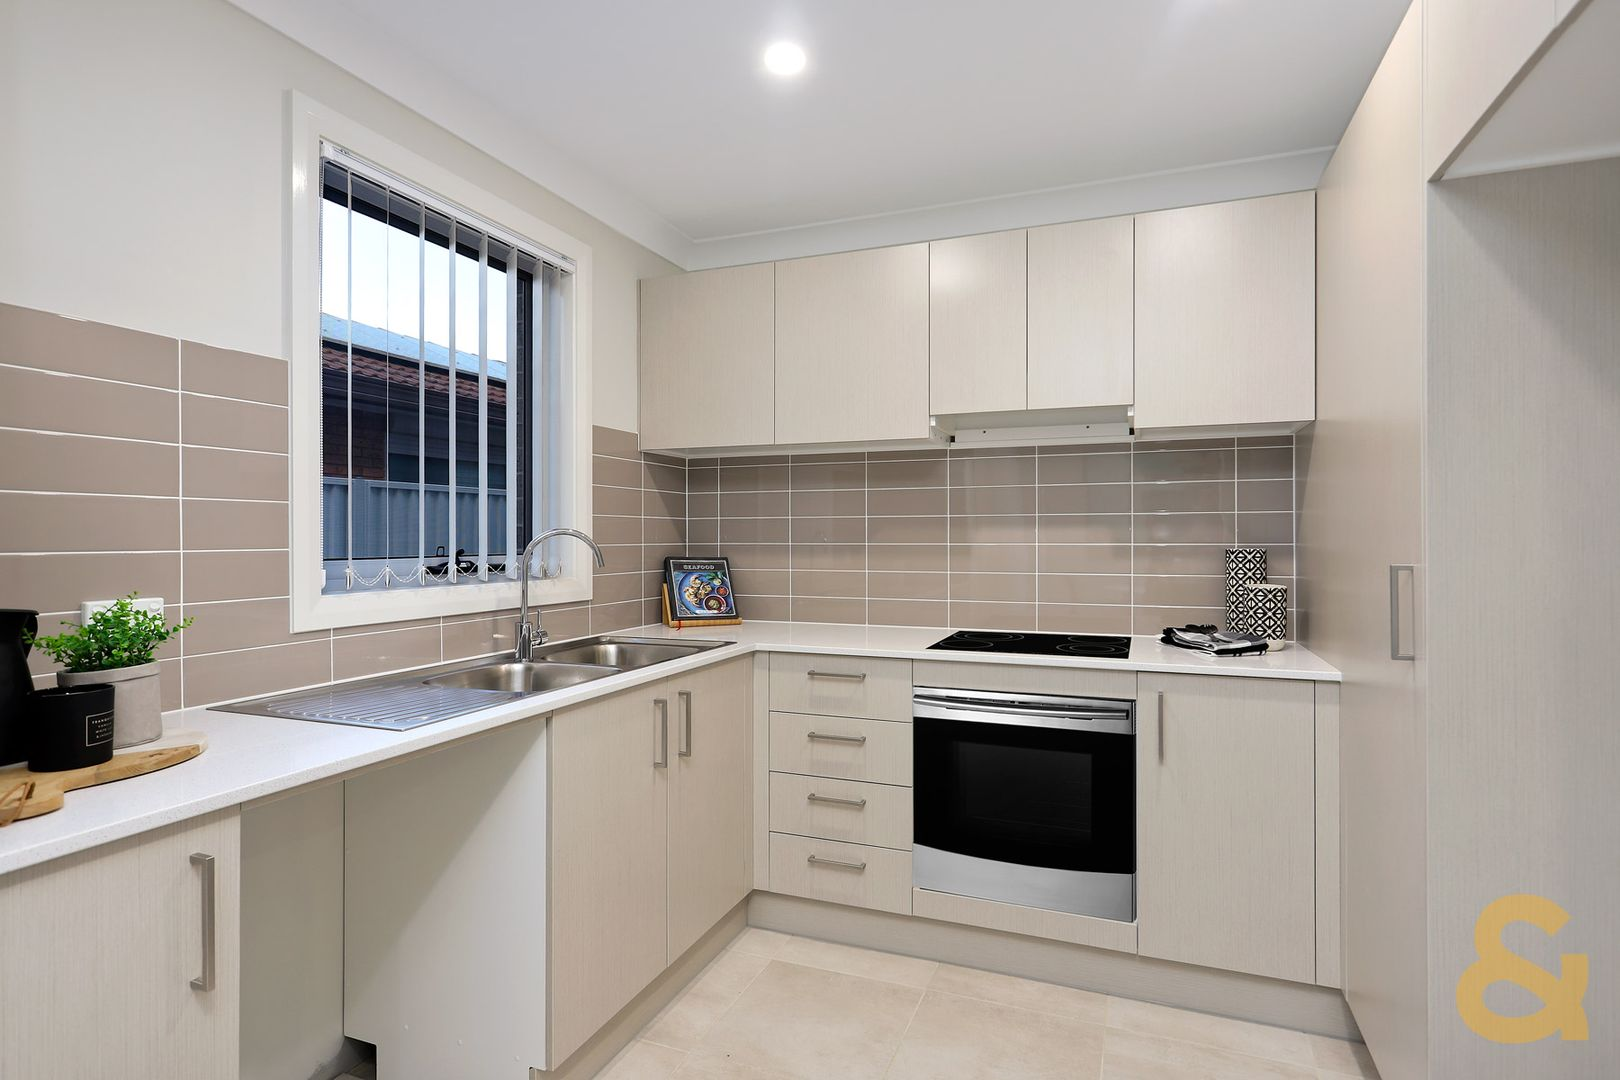 45 Canberra Street, Oxley Park NSW 2760, Image 2